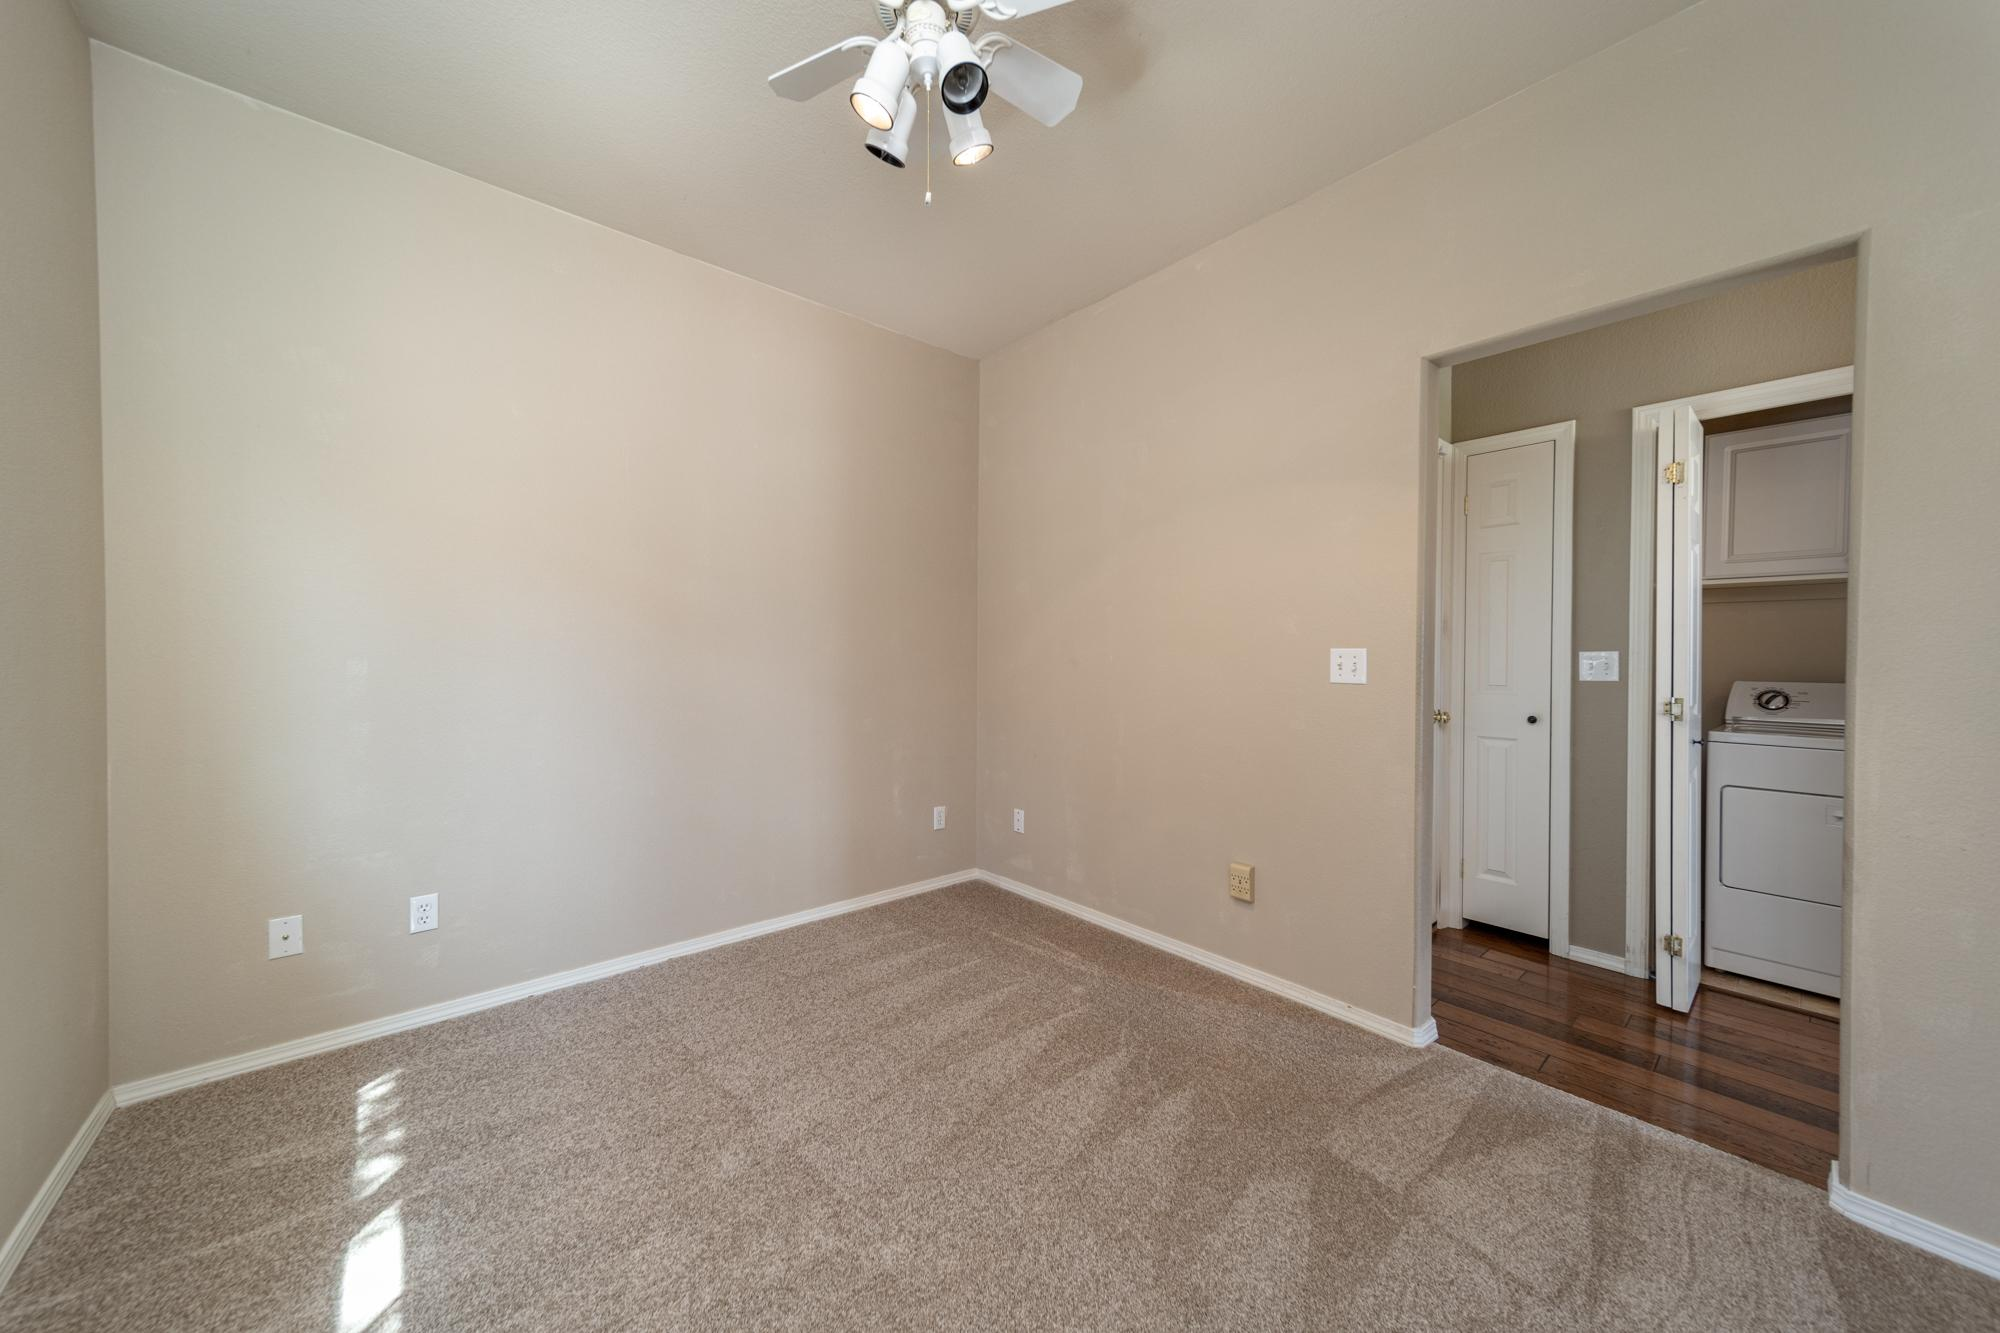 Bedroom with Carpet - 3731 Buffalo Ln Montrose, CO 81403 - Atha Team Golf Property